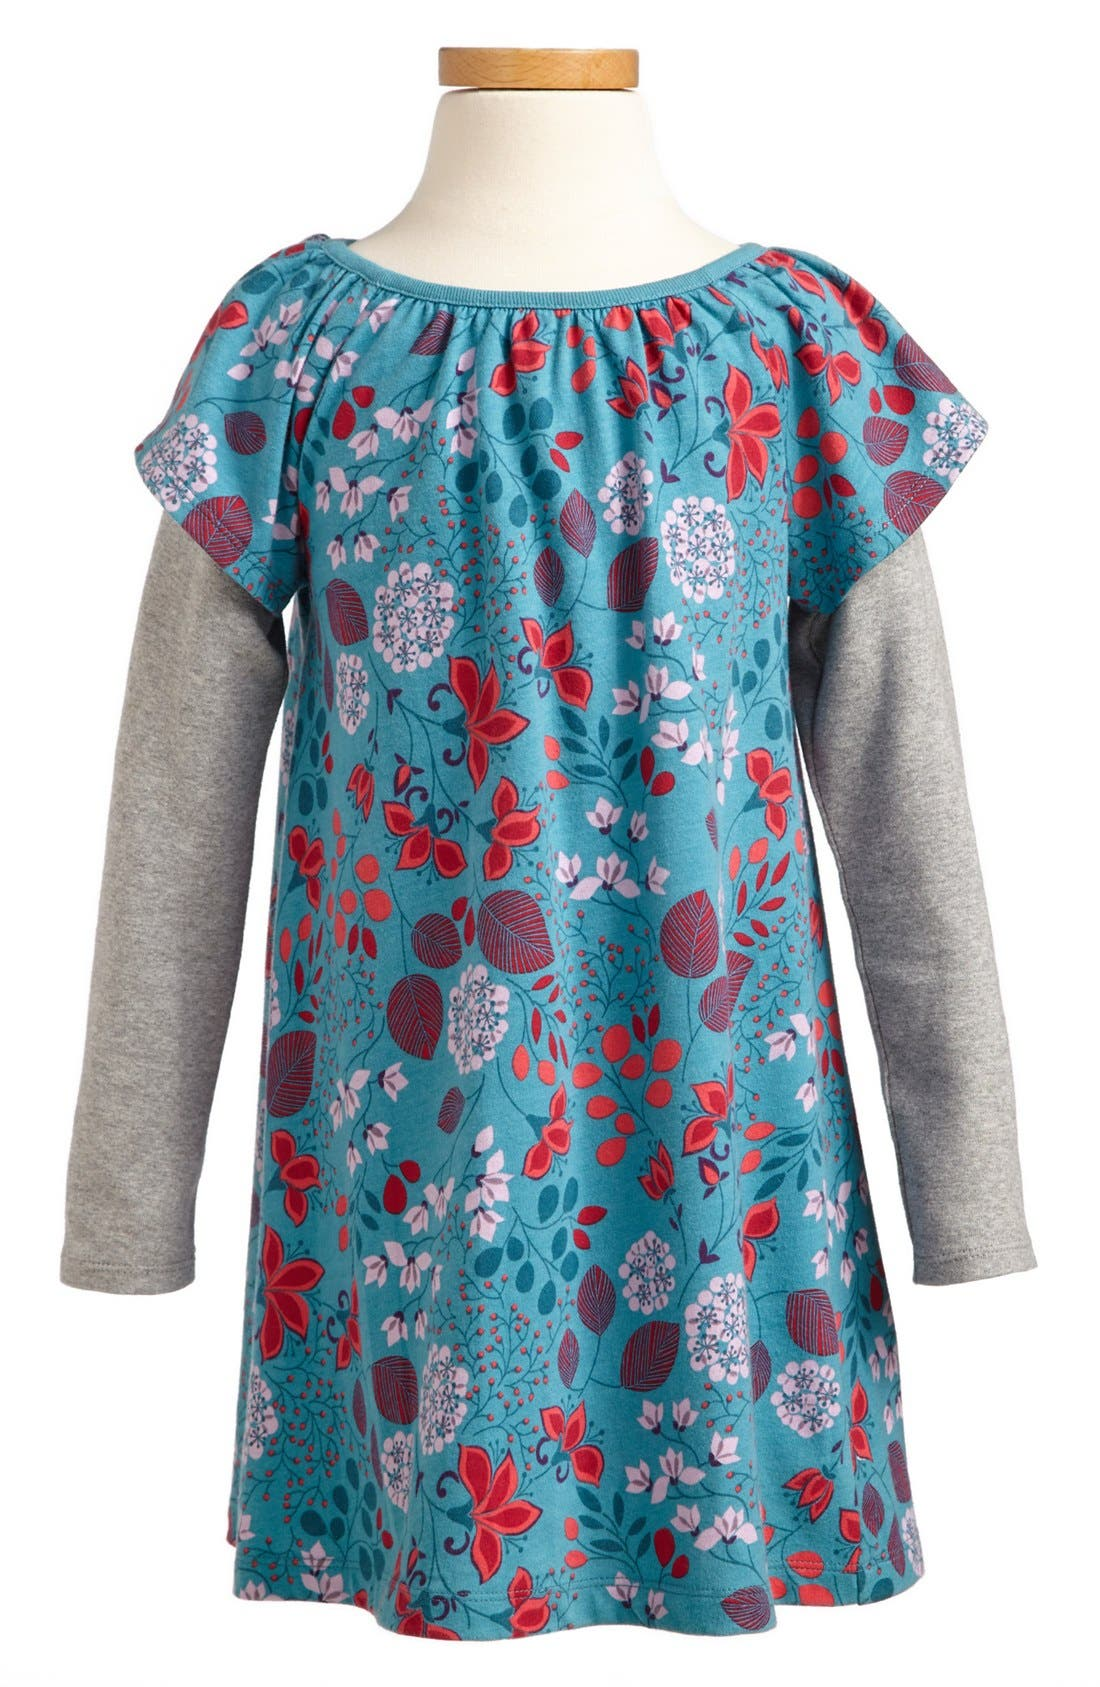 Alternate Image 1 Selected - Tea Collection 'Botanical' Layer Dress (Toddler Girls, Little Girls & Big Girls)